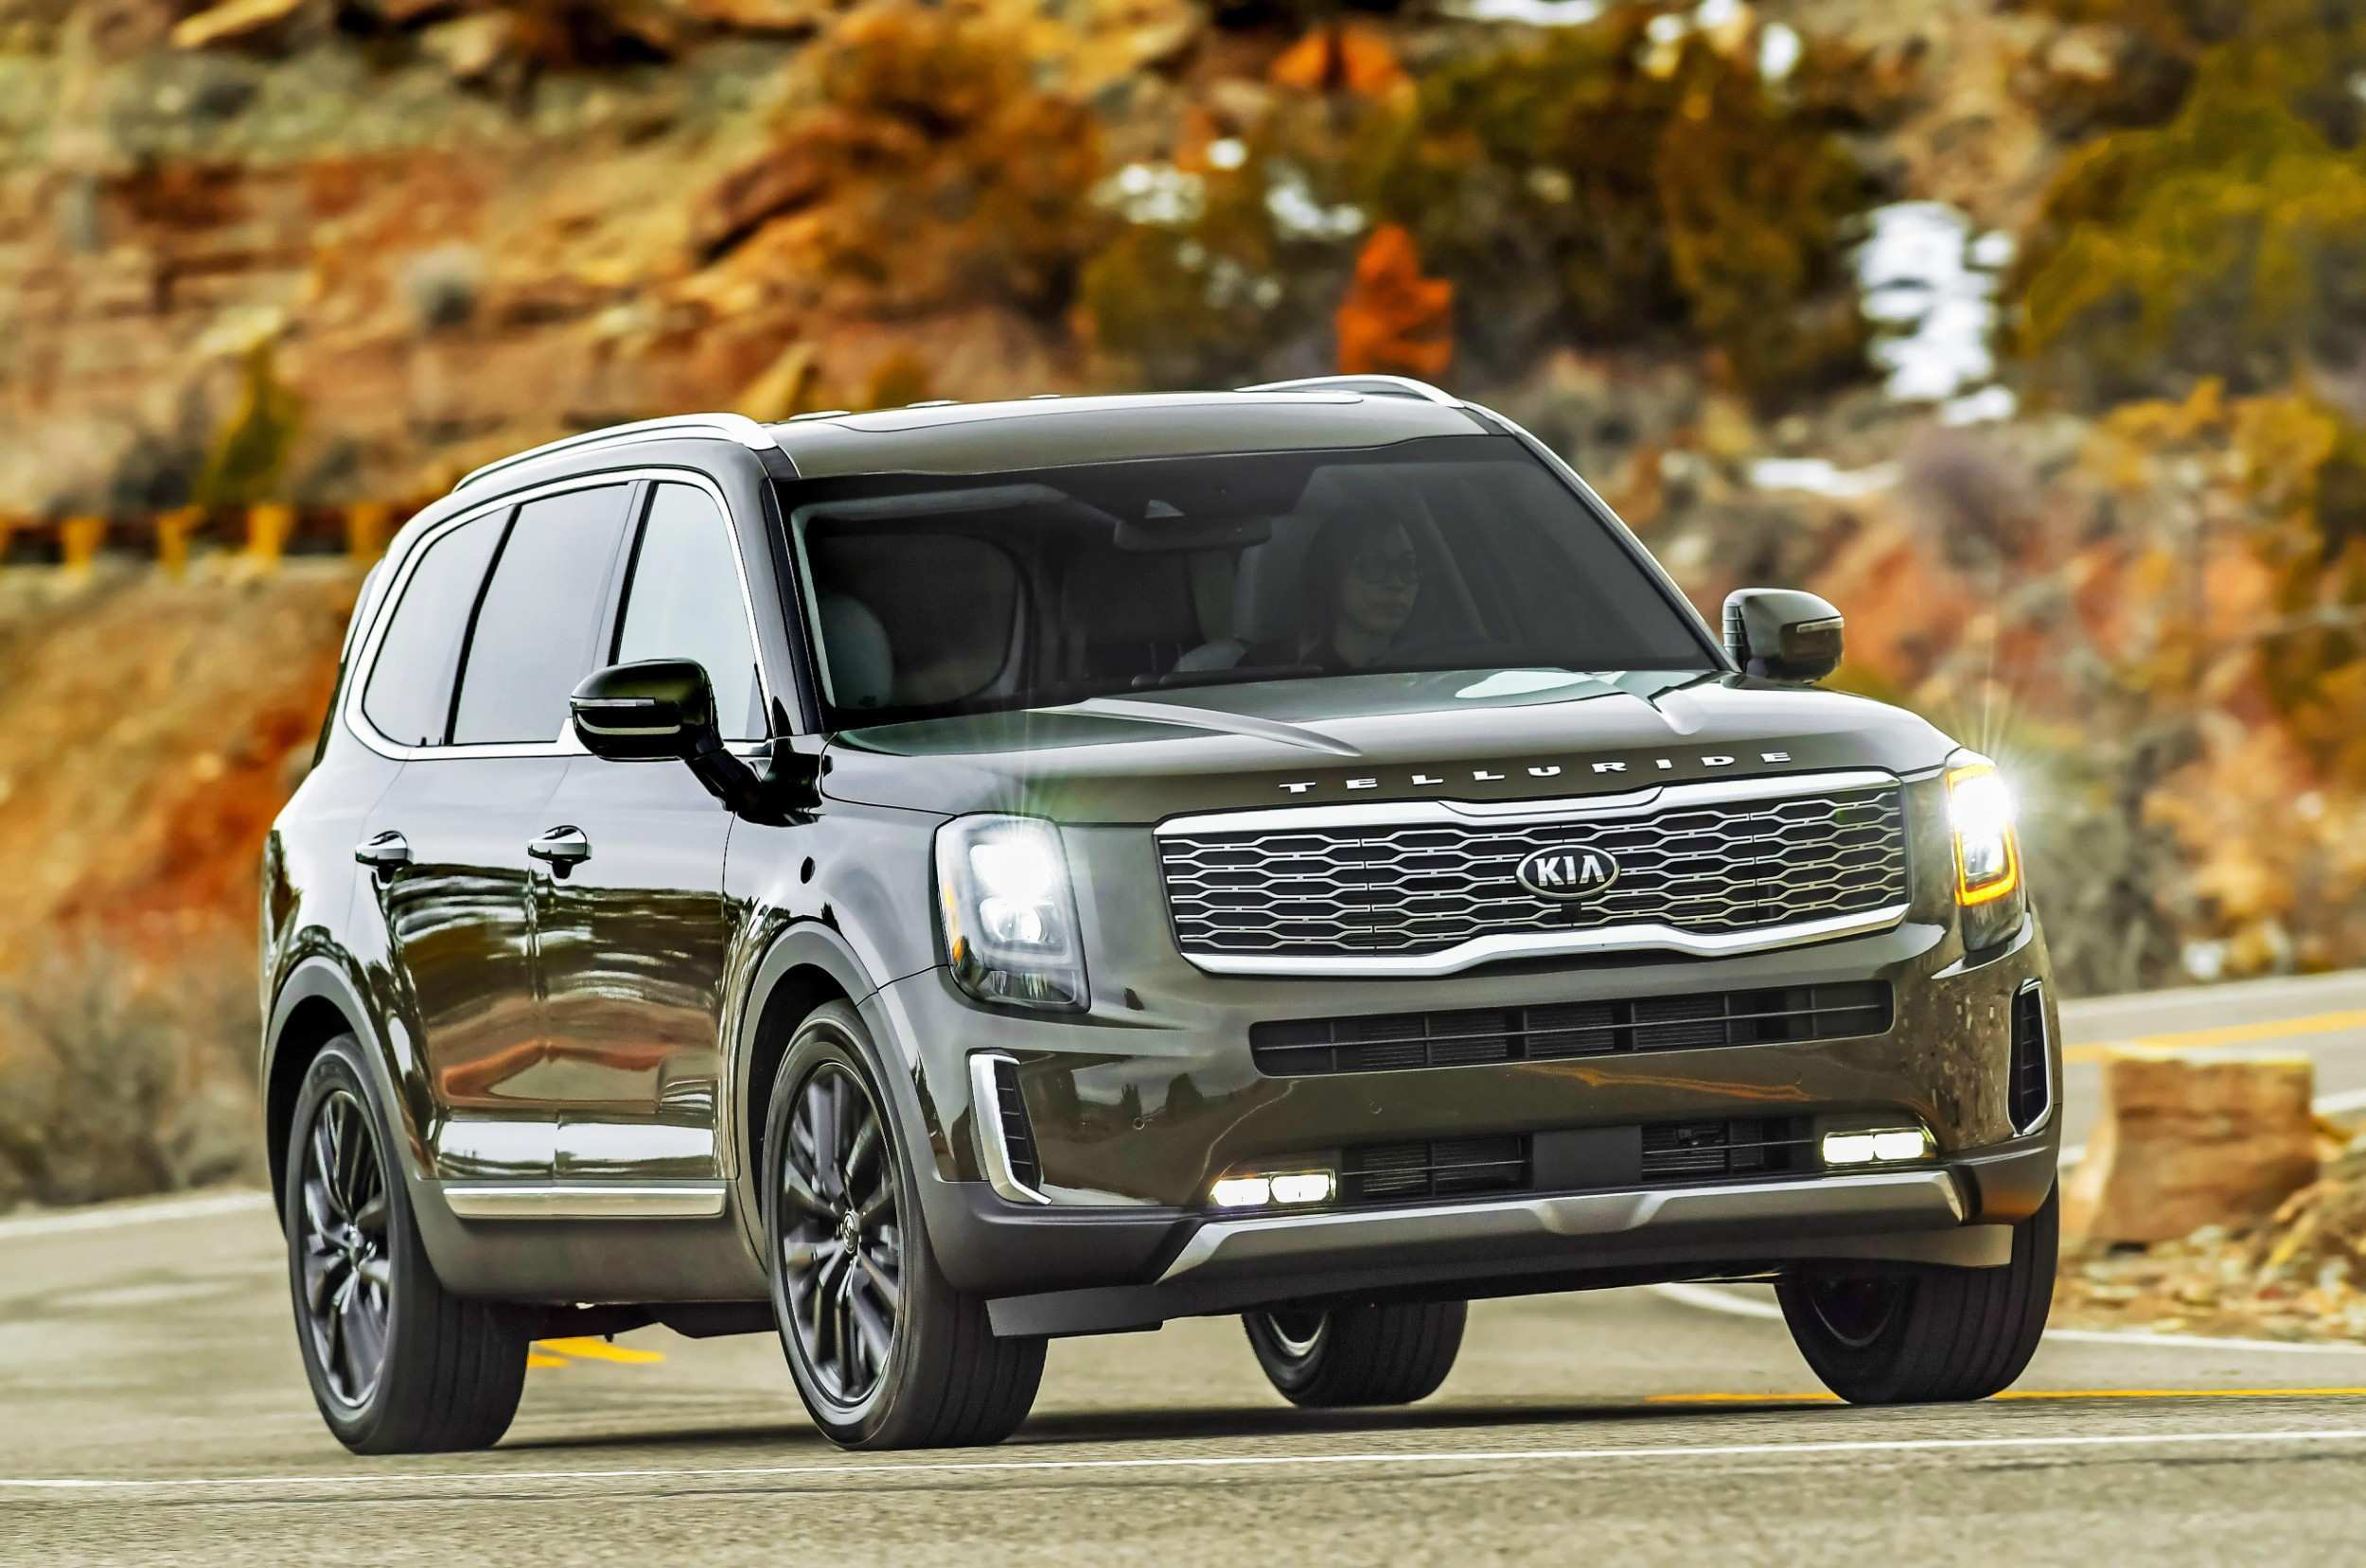 37 New Kia Telluride 2020 Configurations with Kia Telluride 2020